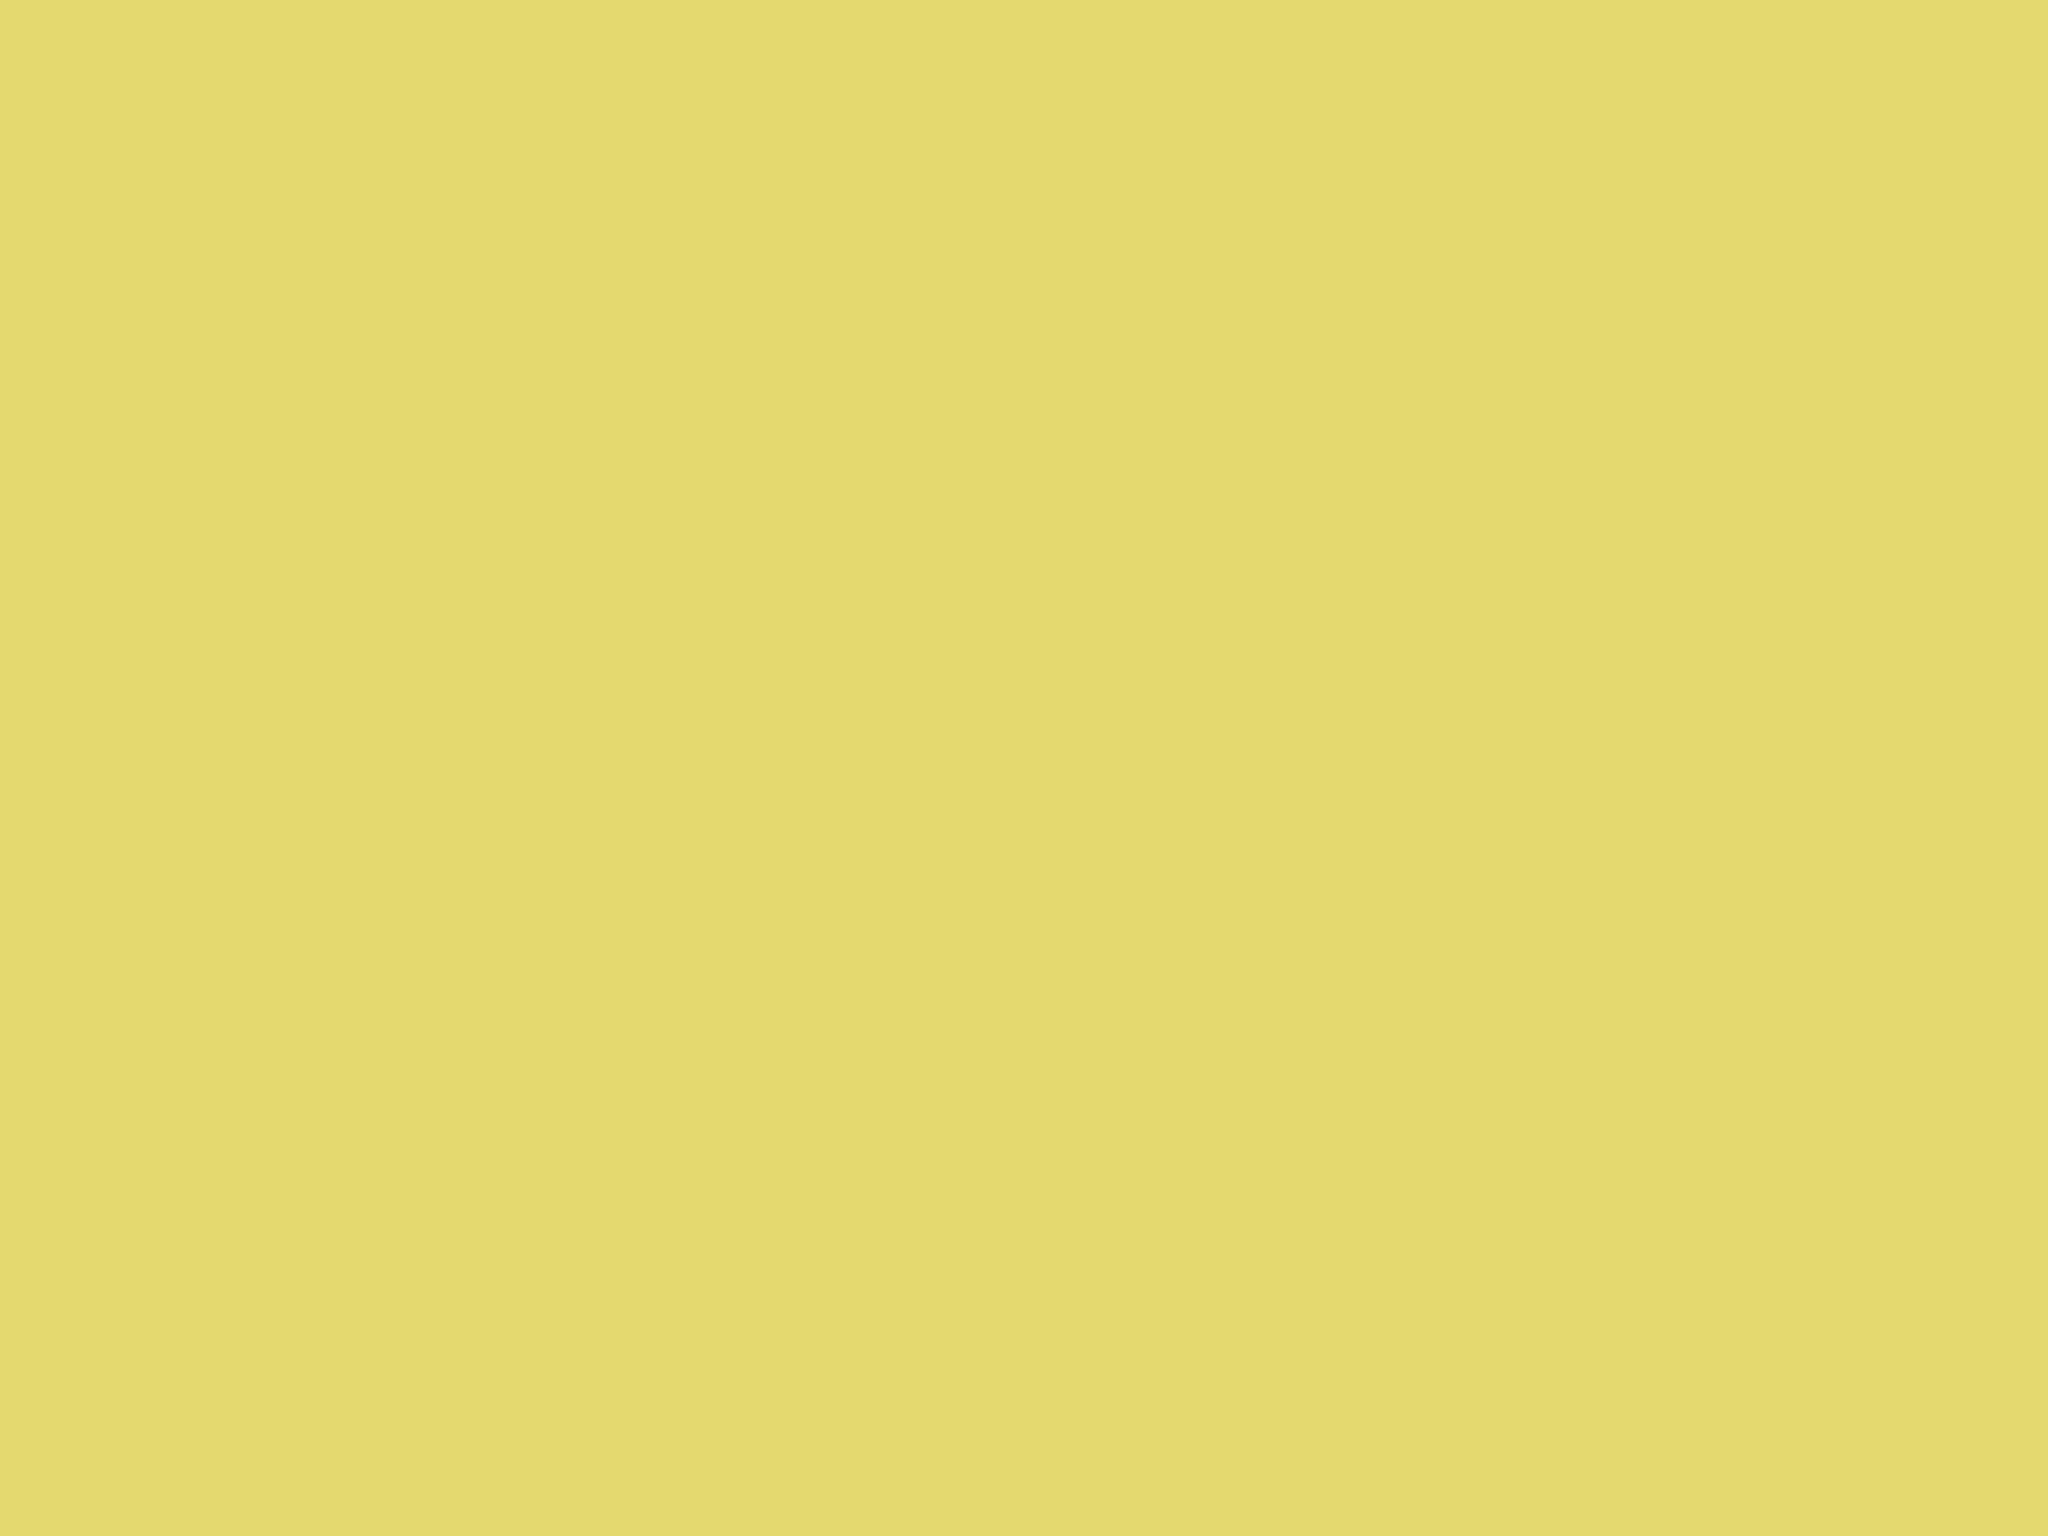 2048x1536 Straw Solid Color Background